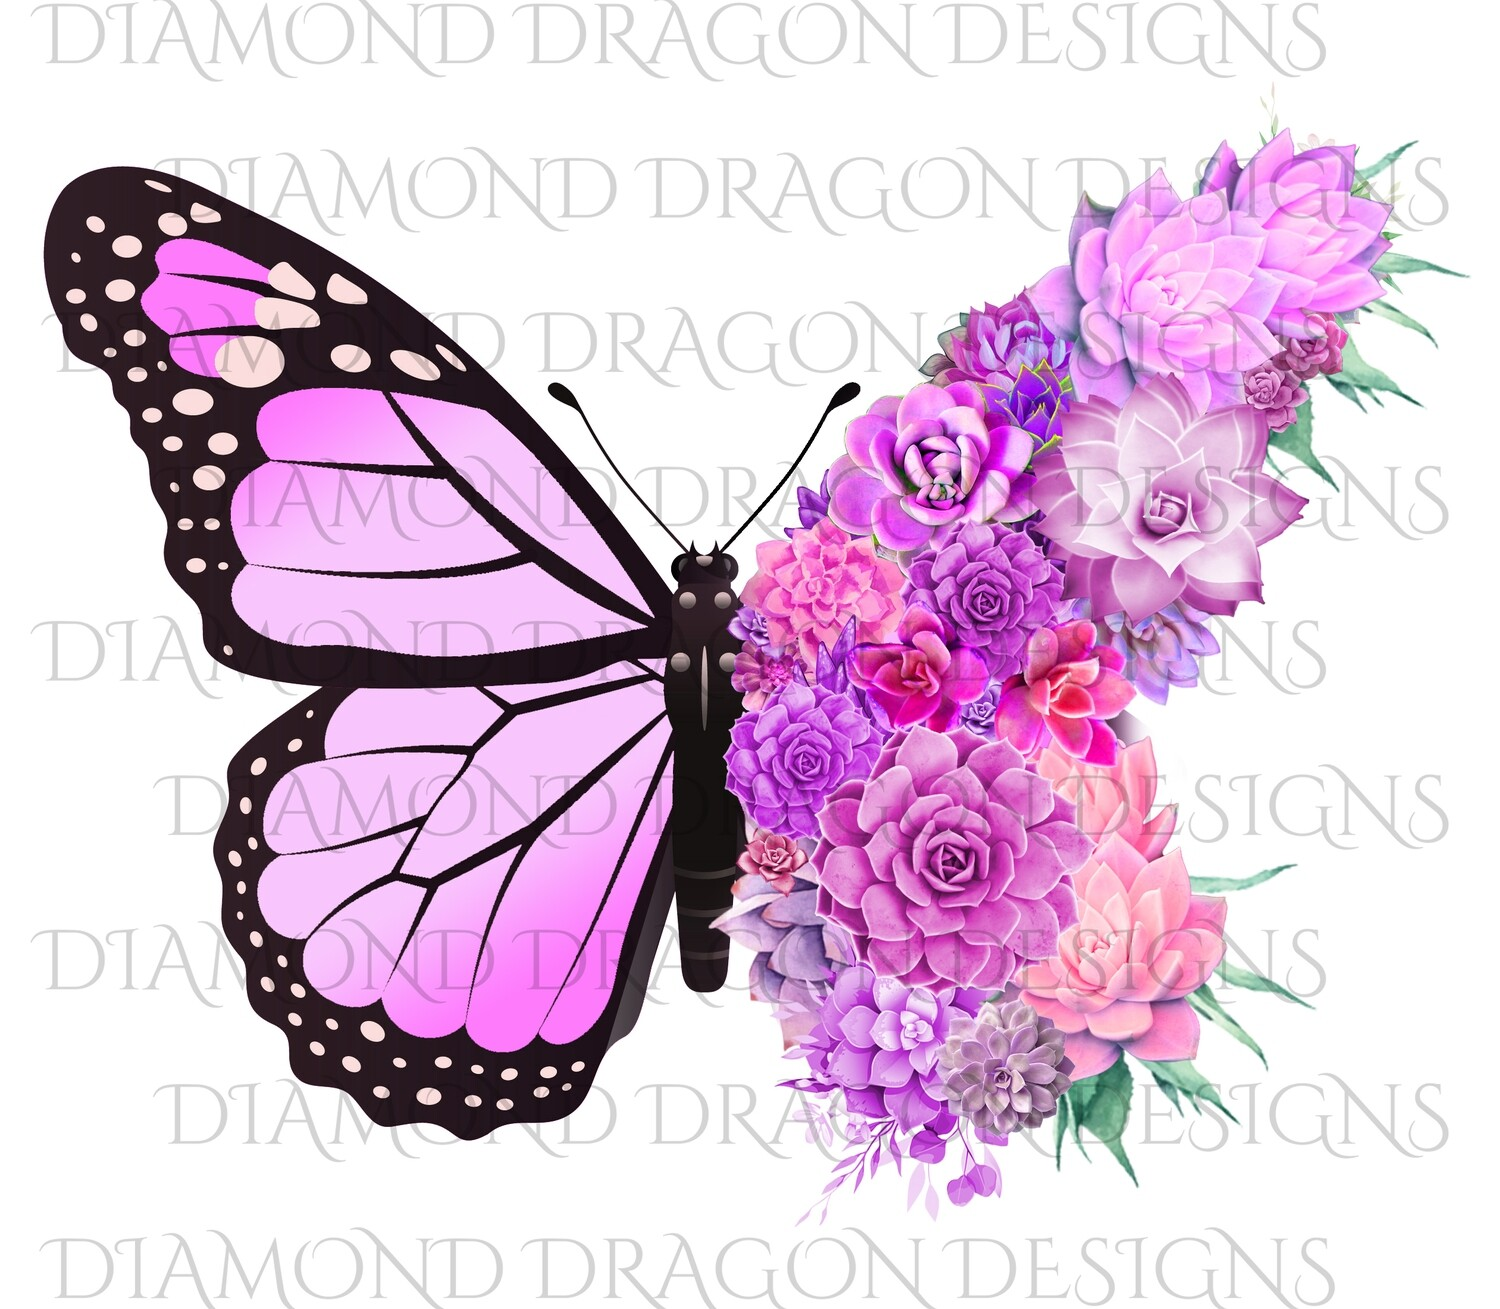 Butterfly - Succulent Butterfly, Light Pink Monarch Butterfly, Watercolor Butterfly, Butterfly with Succulents, Digital Image